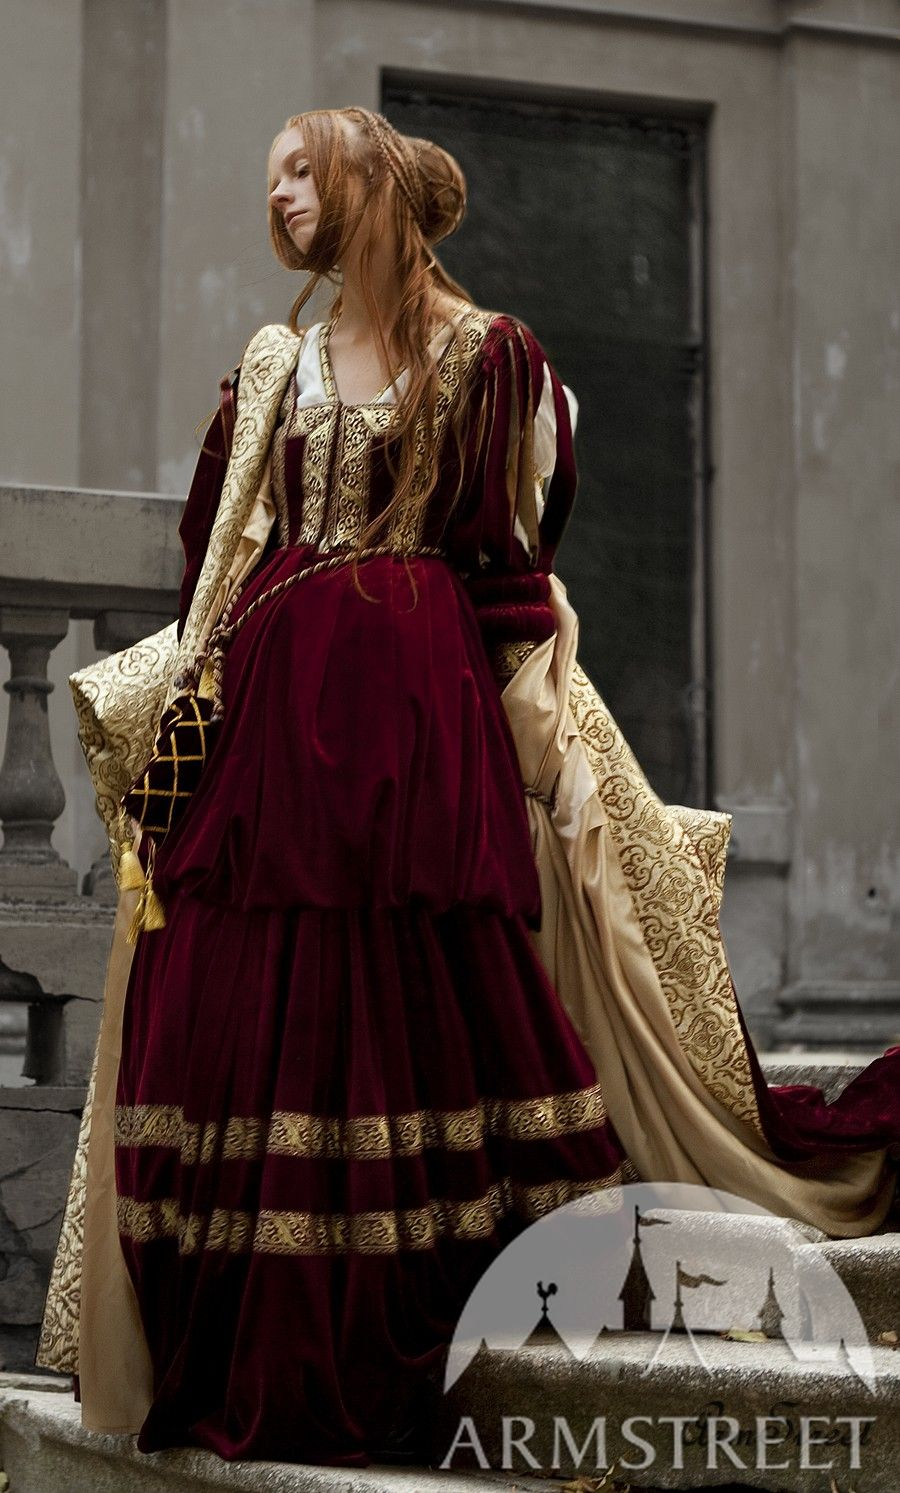 0cfa46537a8 Renaissance dress for Queen or Princess character garb for sale. Available  in  burgundy velvet    by medieval store ArmStreet